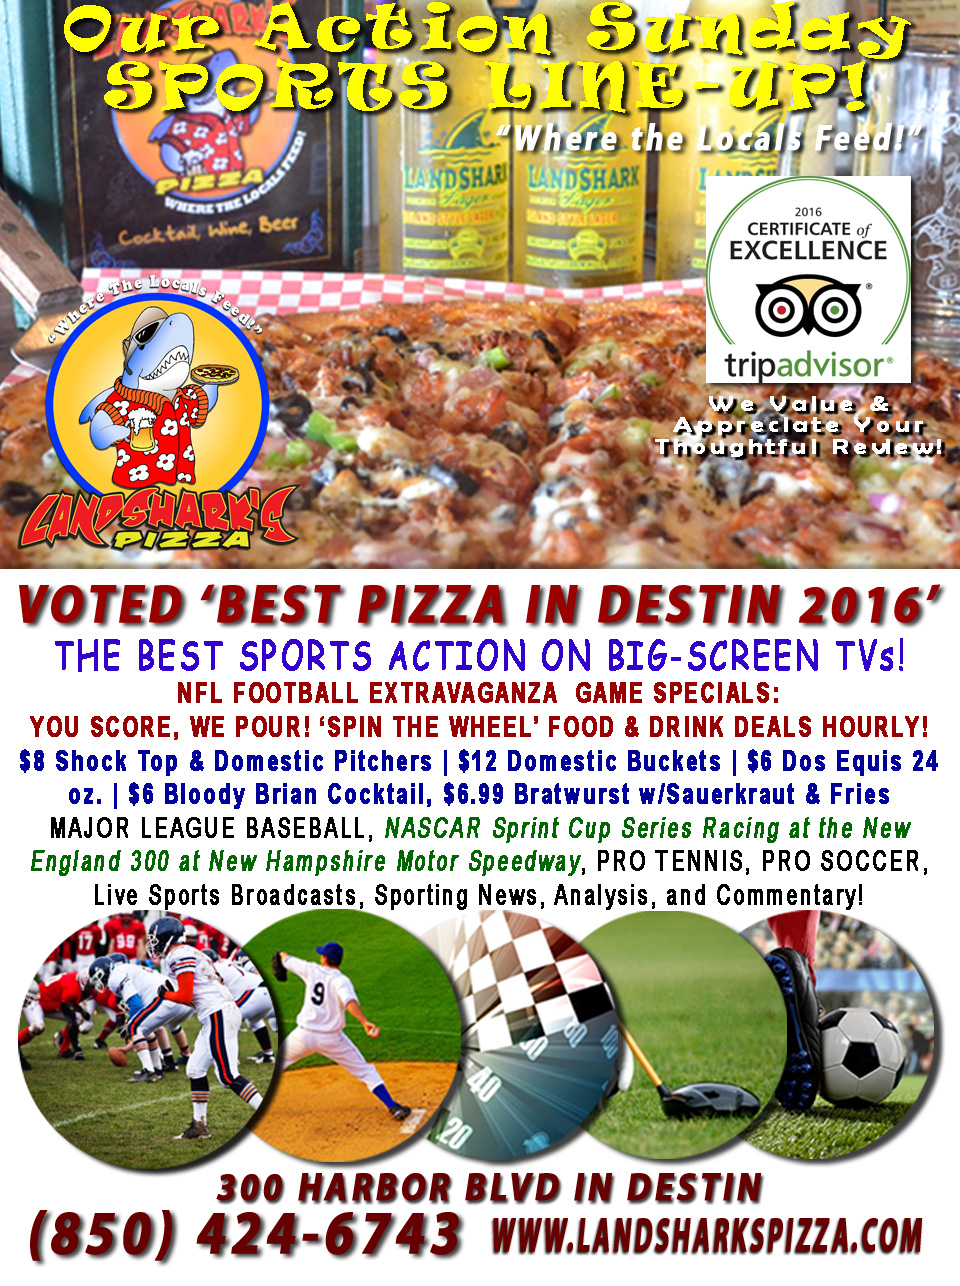 destin-nfl-football-at-landsharks-pizza-food-and-drink-specials-weekly-10-02-16